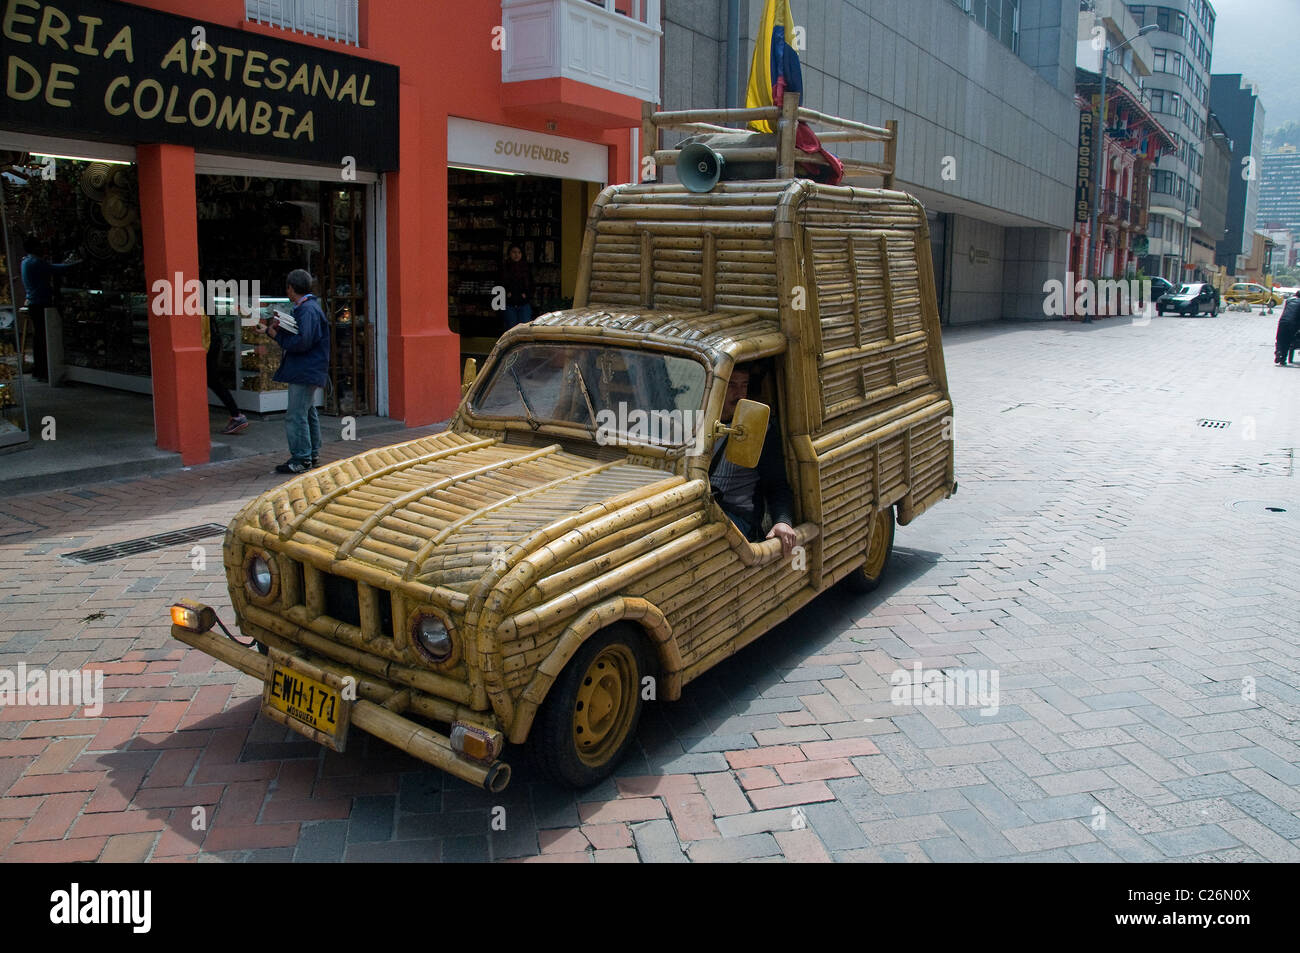 Bogota Colombia is an interesting city in South America having some ...